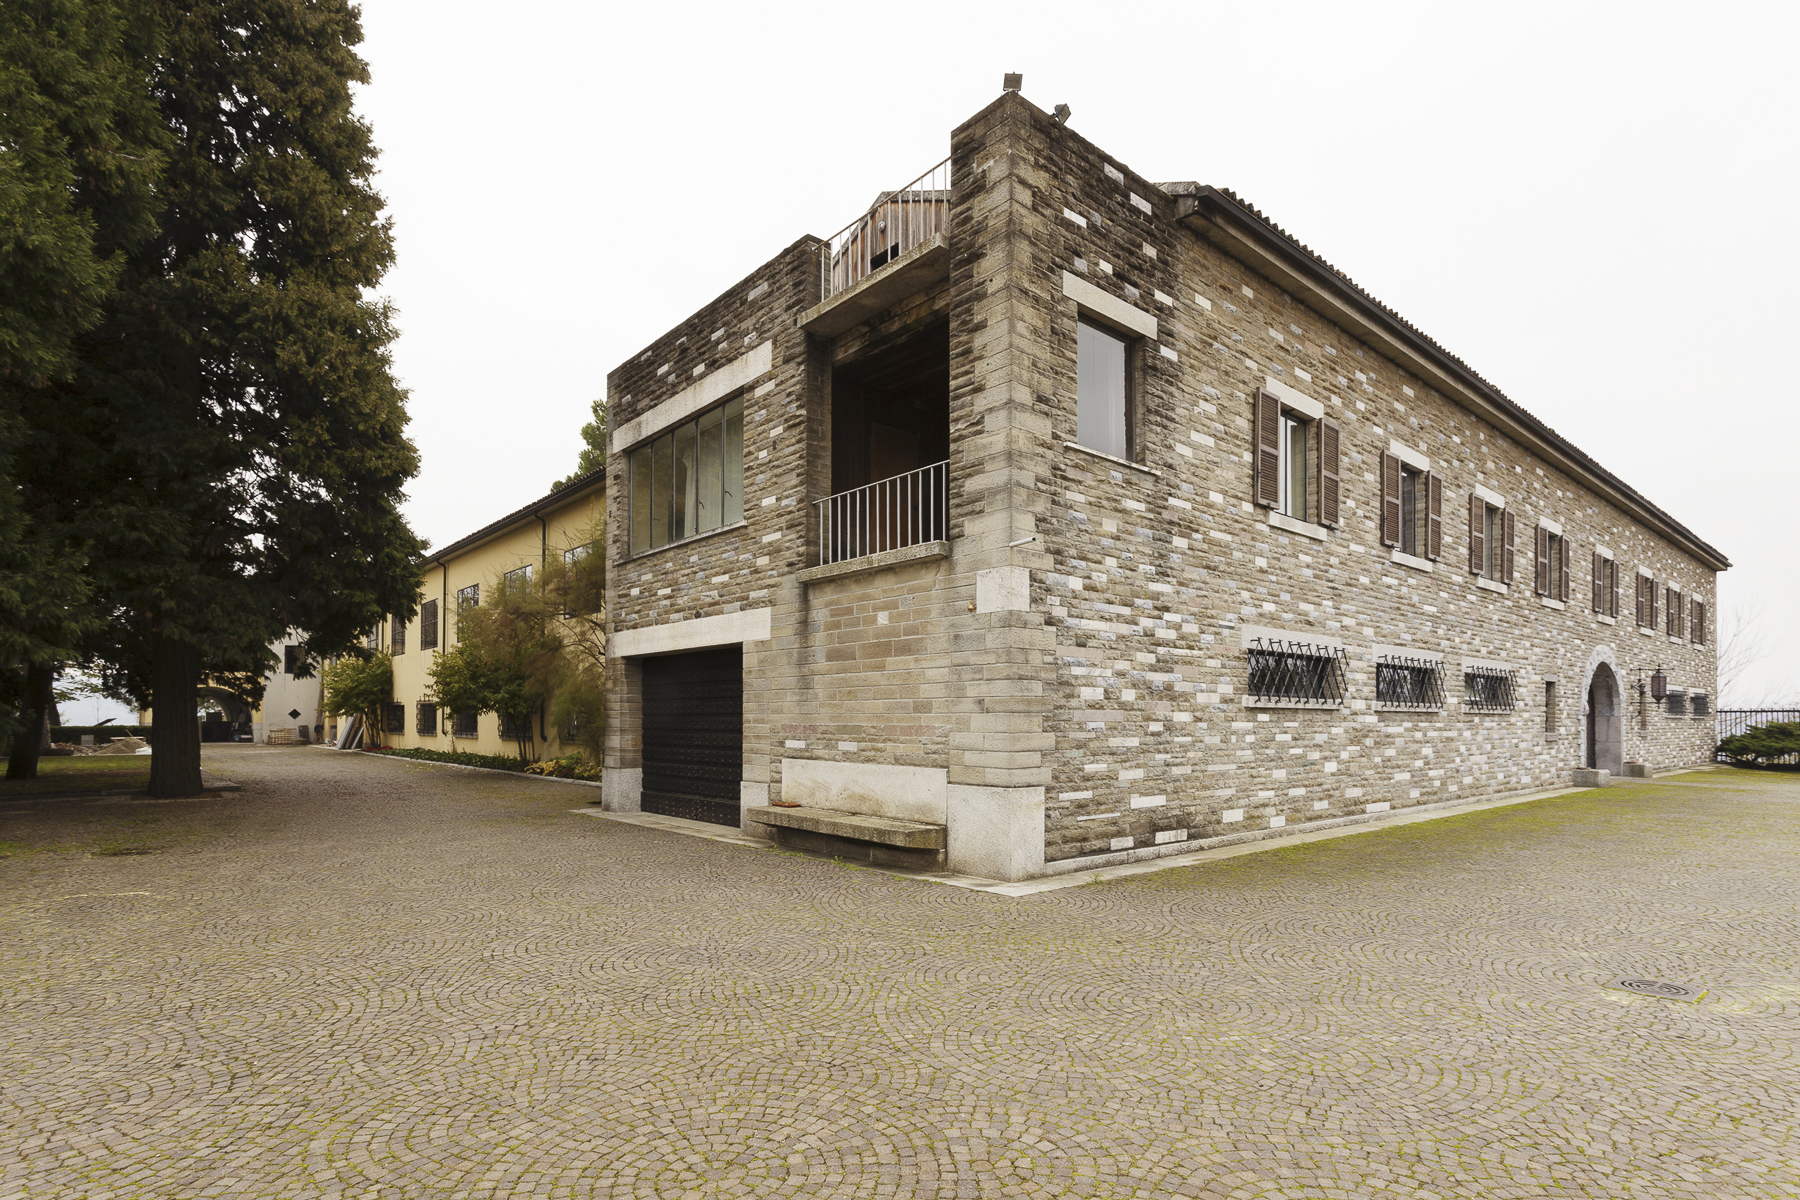 Additional photo for property listing at Villa Ottolenghi, architectural masterpiece in Monferrato Strada Monterosso Acqui Terme, Alessandria 15011 Italy